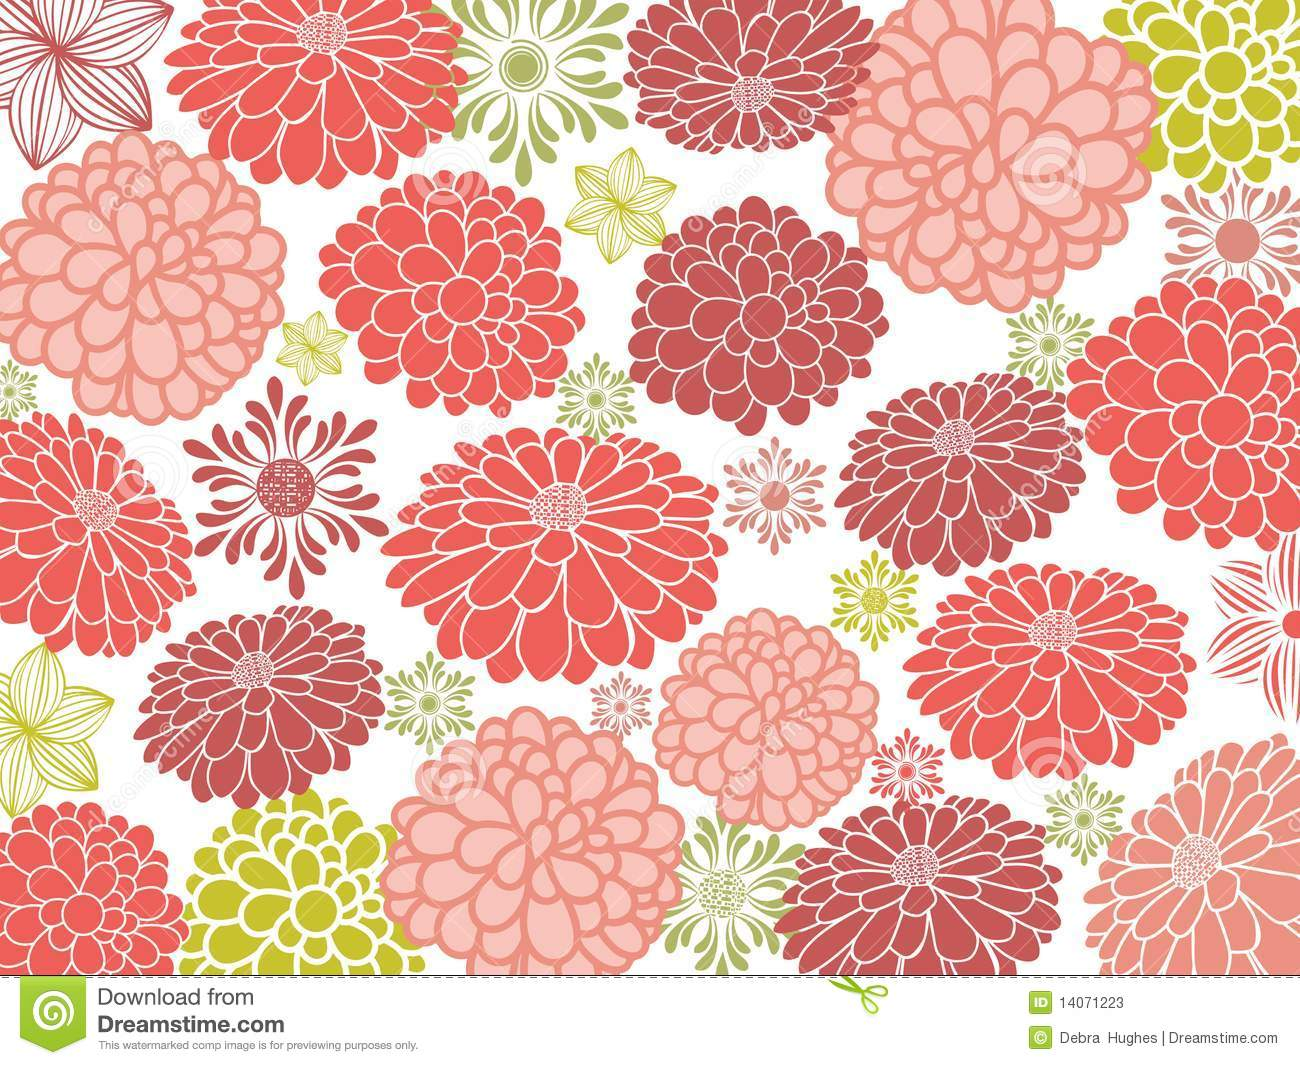 Pretty flower wallpaper stock vector illustration of floret 14071223 download pretty flower wallpaper stock vector illustration of floret 14071223 mightylinksfo